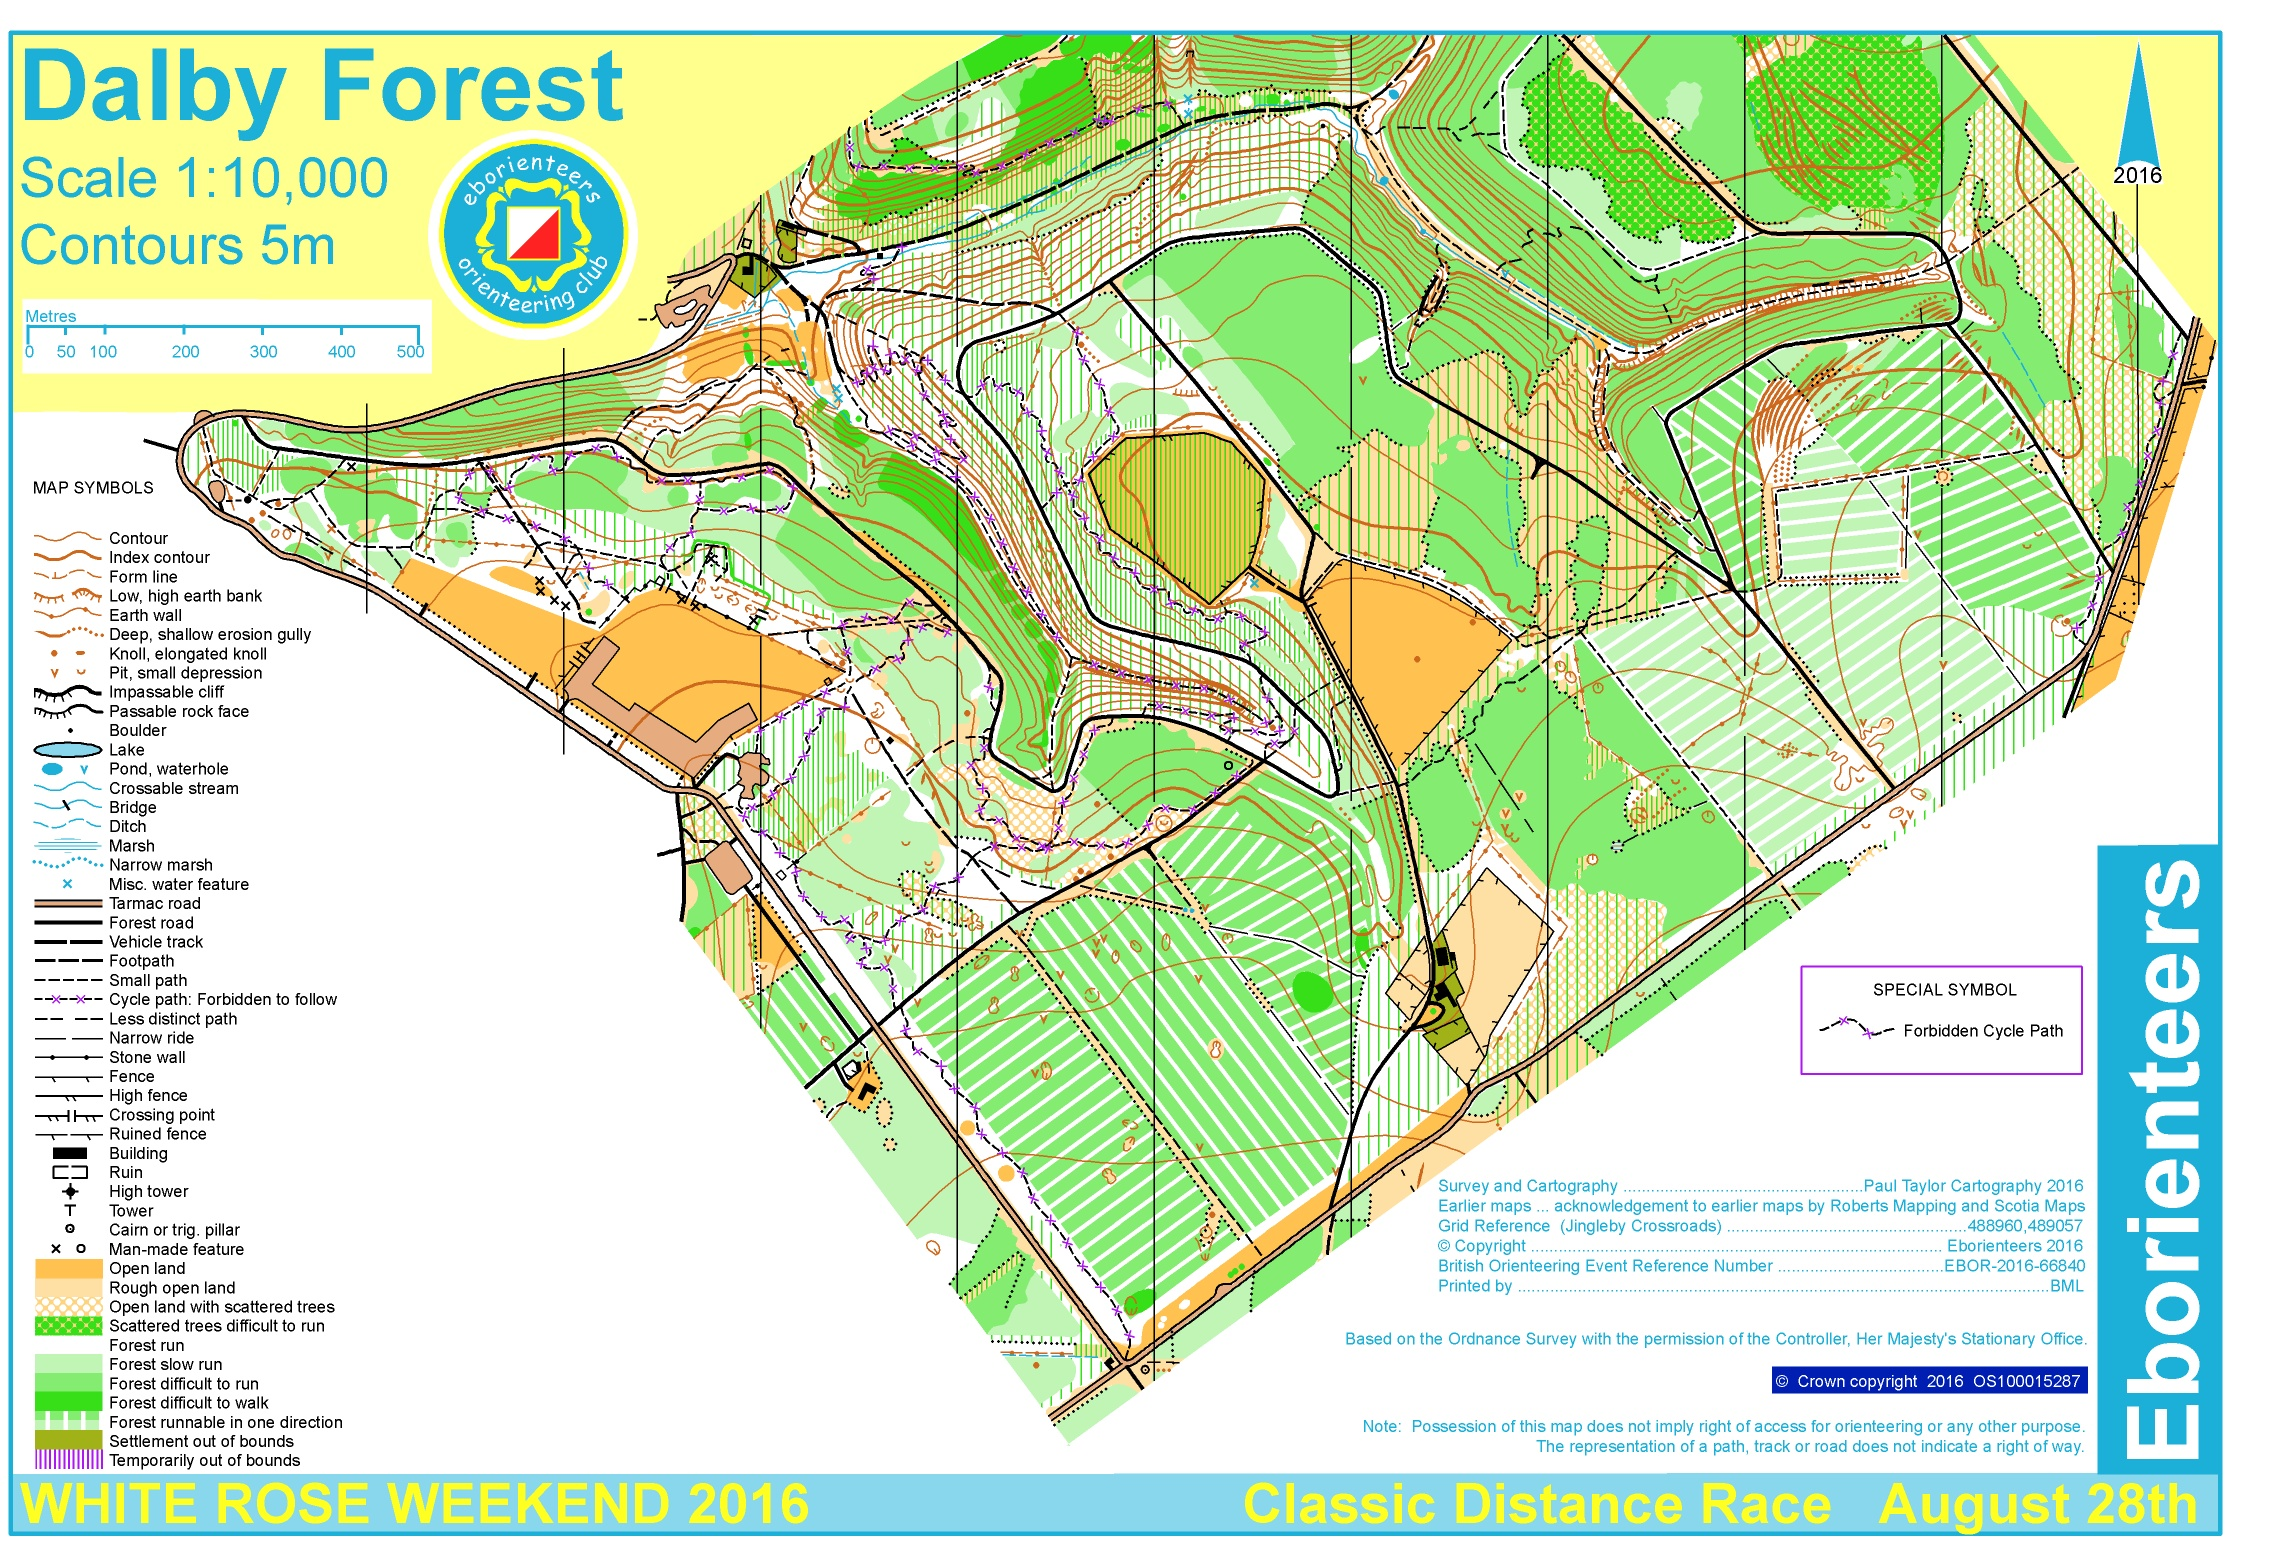 White Rose 2016 Classic Distance  August 28th 2016  Orienteering